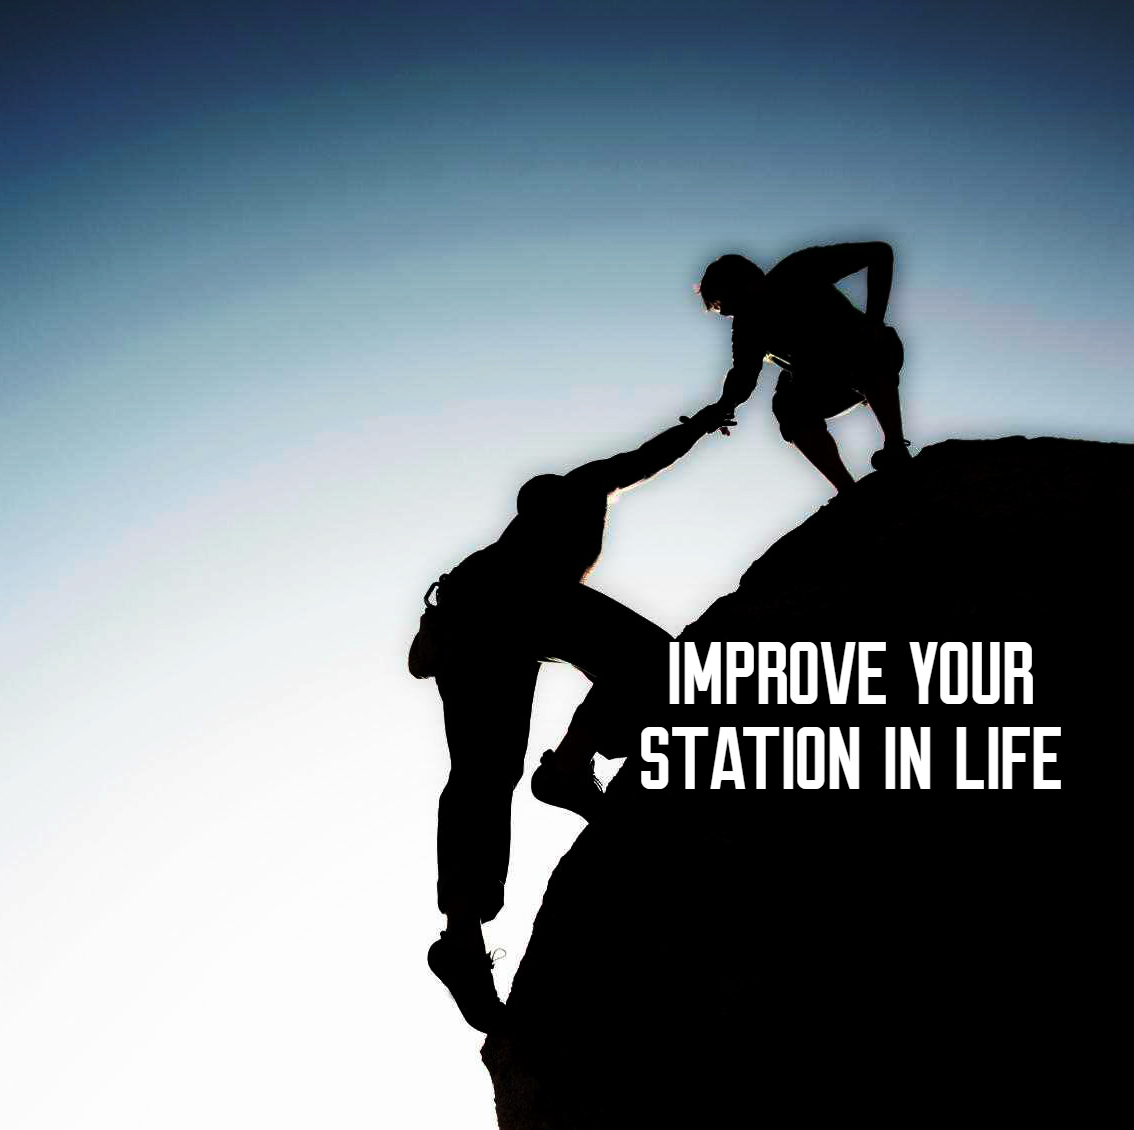 improve your station in life